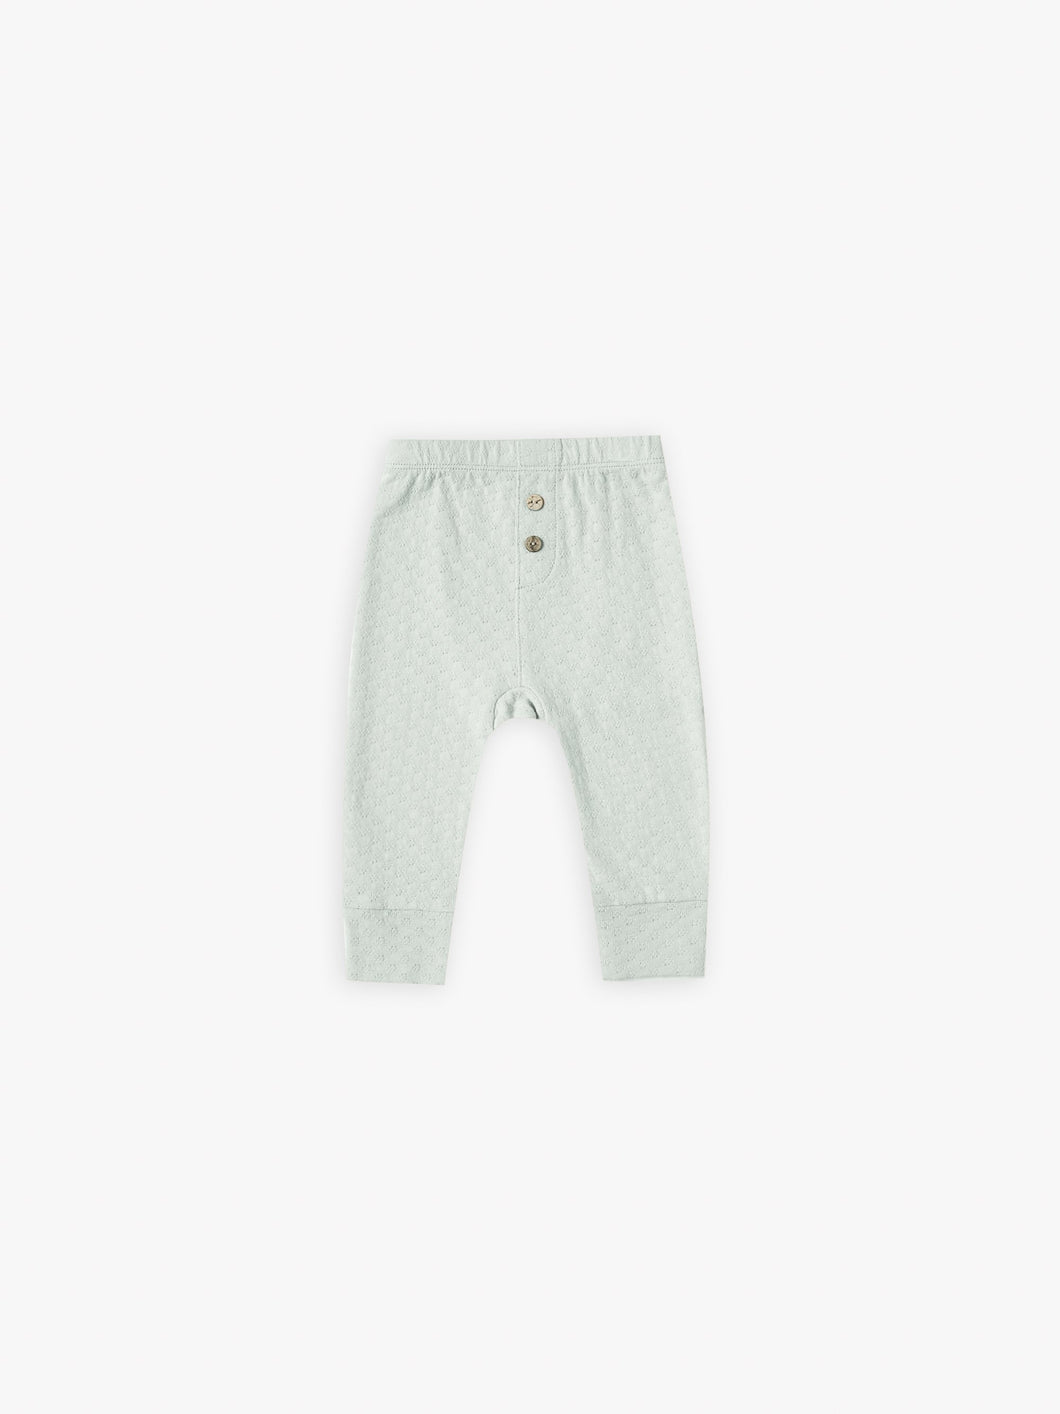 Quincy Mae Pointelle Pyjama Pant - Sea Glass